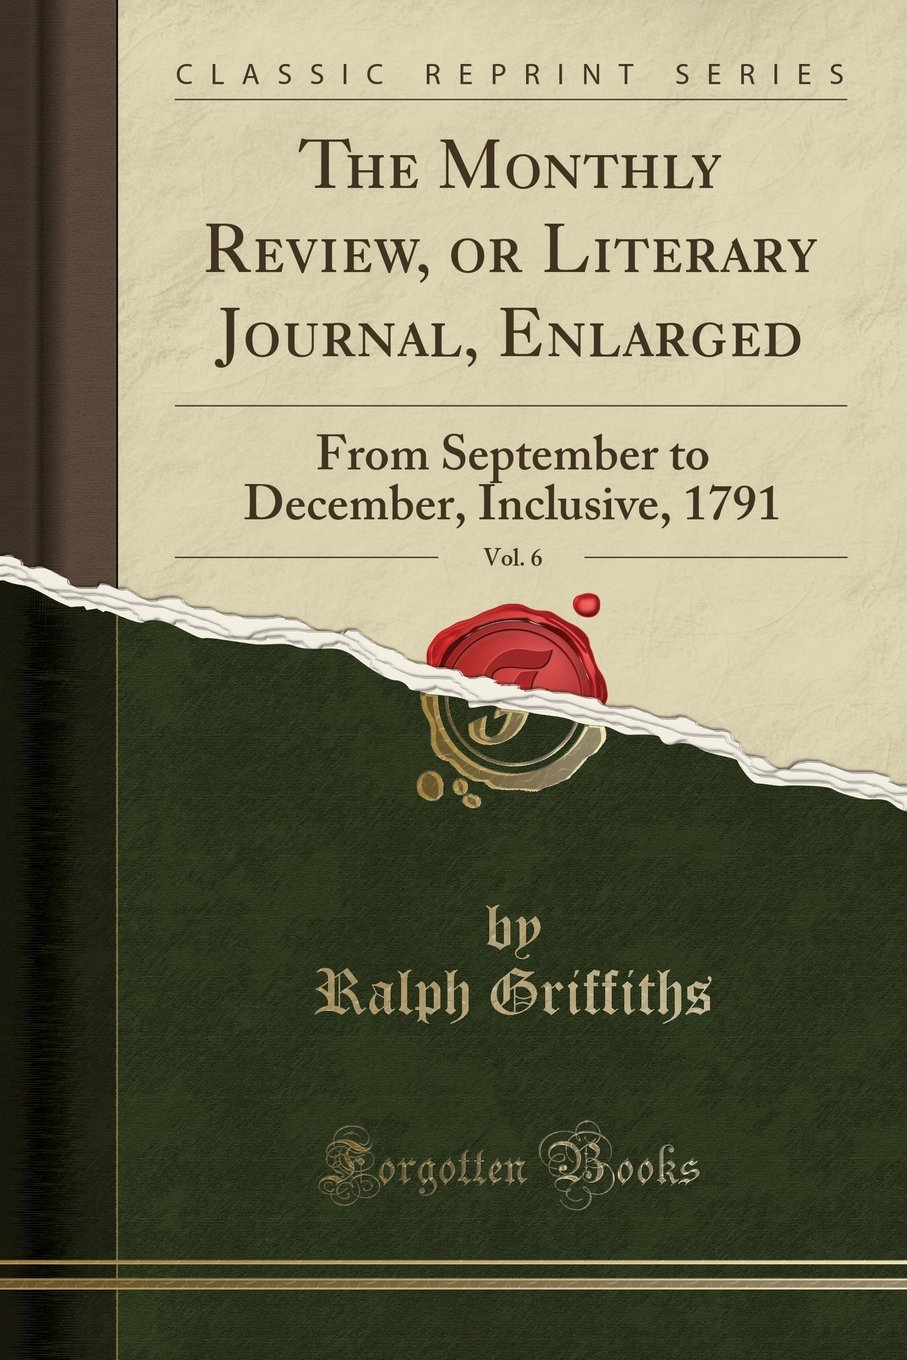 Download The Monthly Review, or Literary Journal, Enlarged, Vol. 6: From September to December, Inclusive, 1791 (Classic Reprint) pdf epub